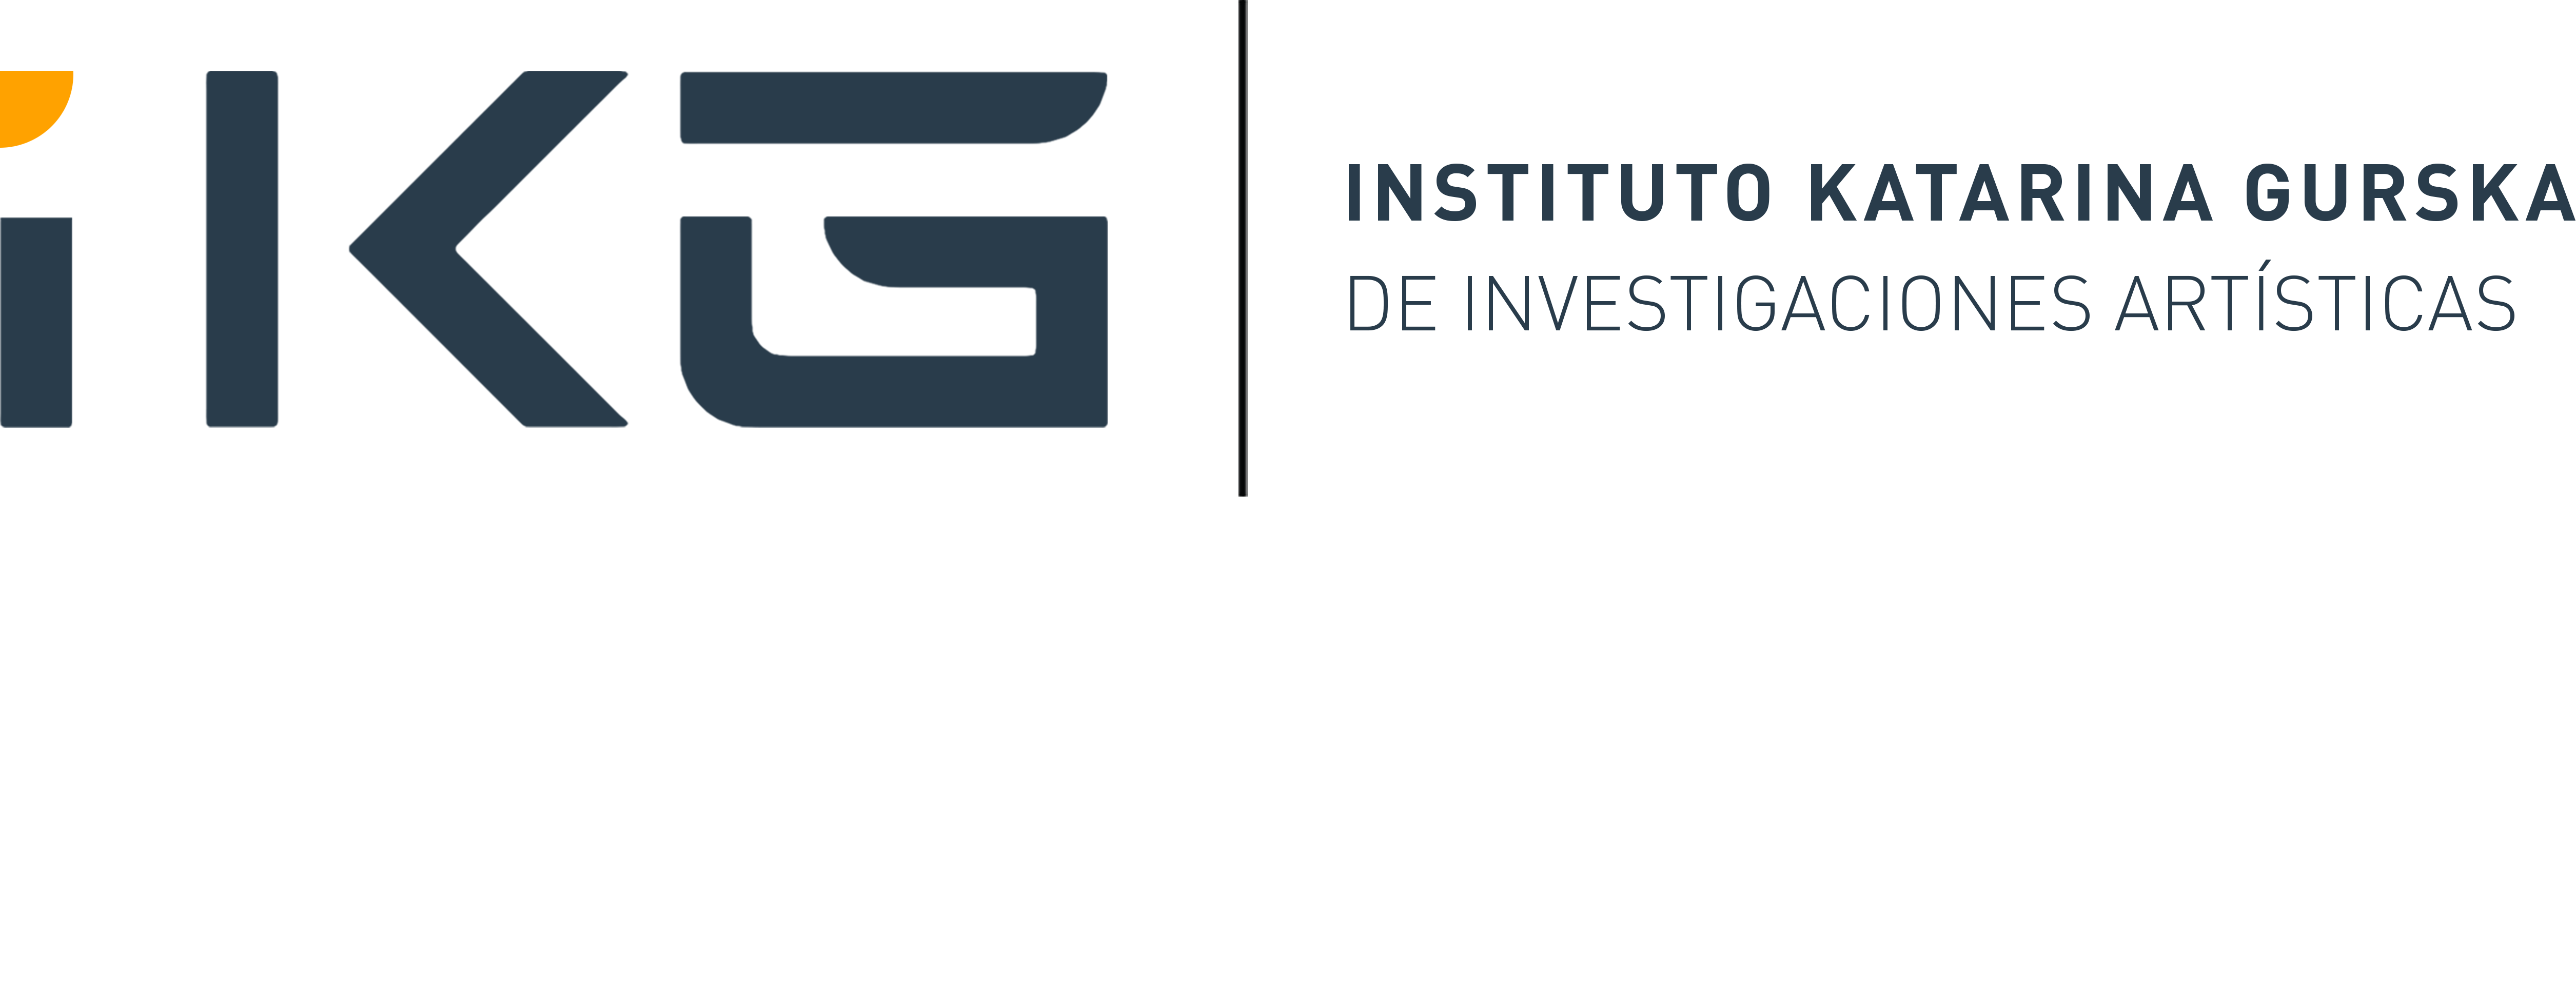 Instituto Katarina Gurska